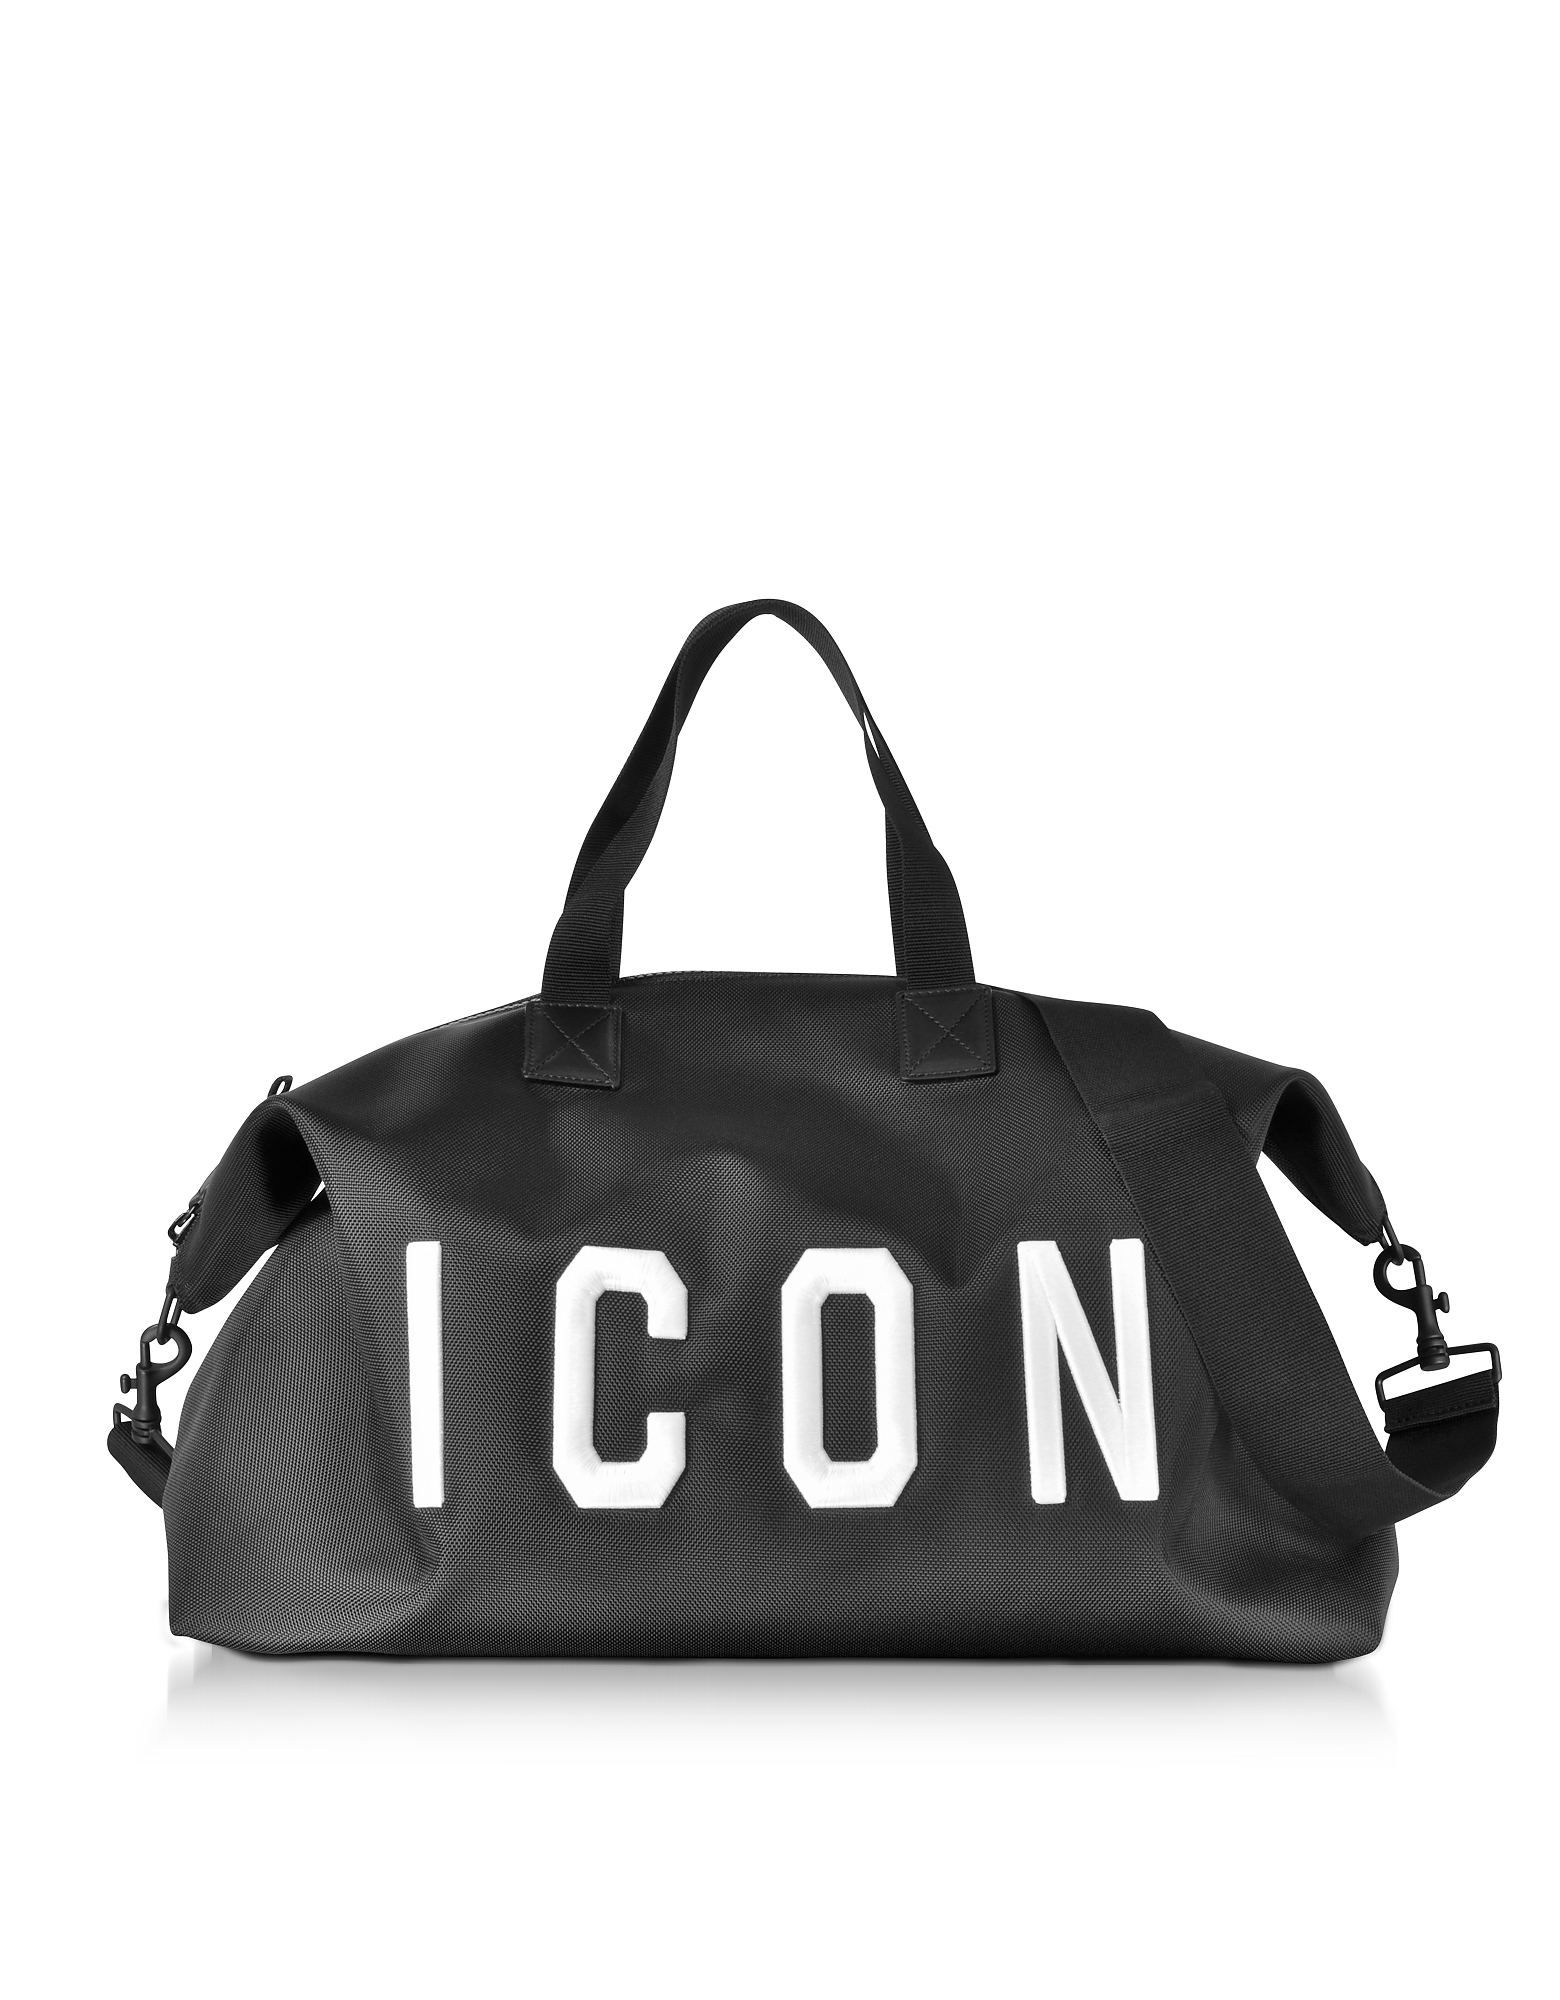 DSquared2 Travel Bags, Icon Black Techno Fabric Men's Duffle Bag